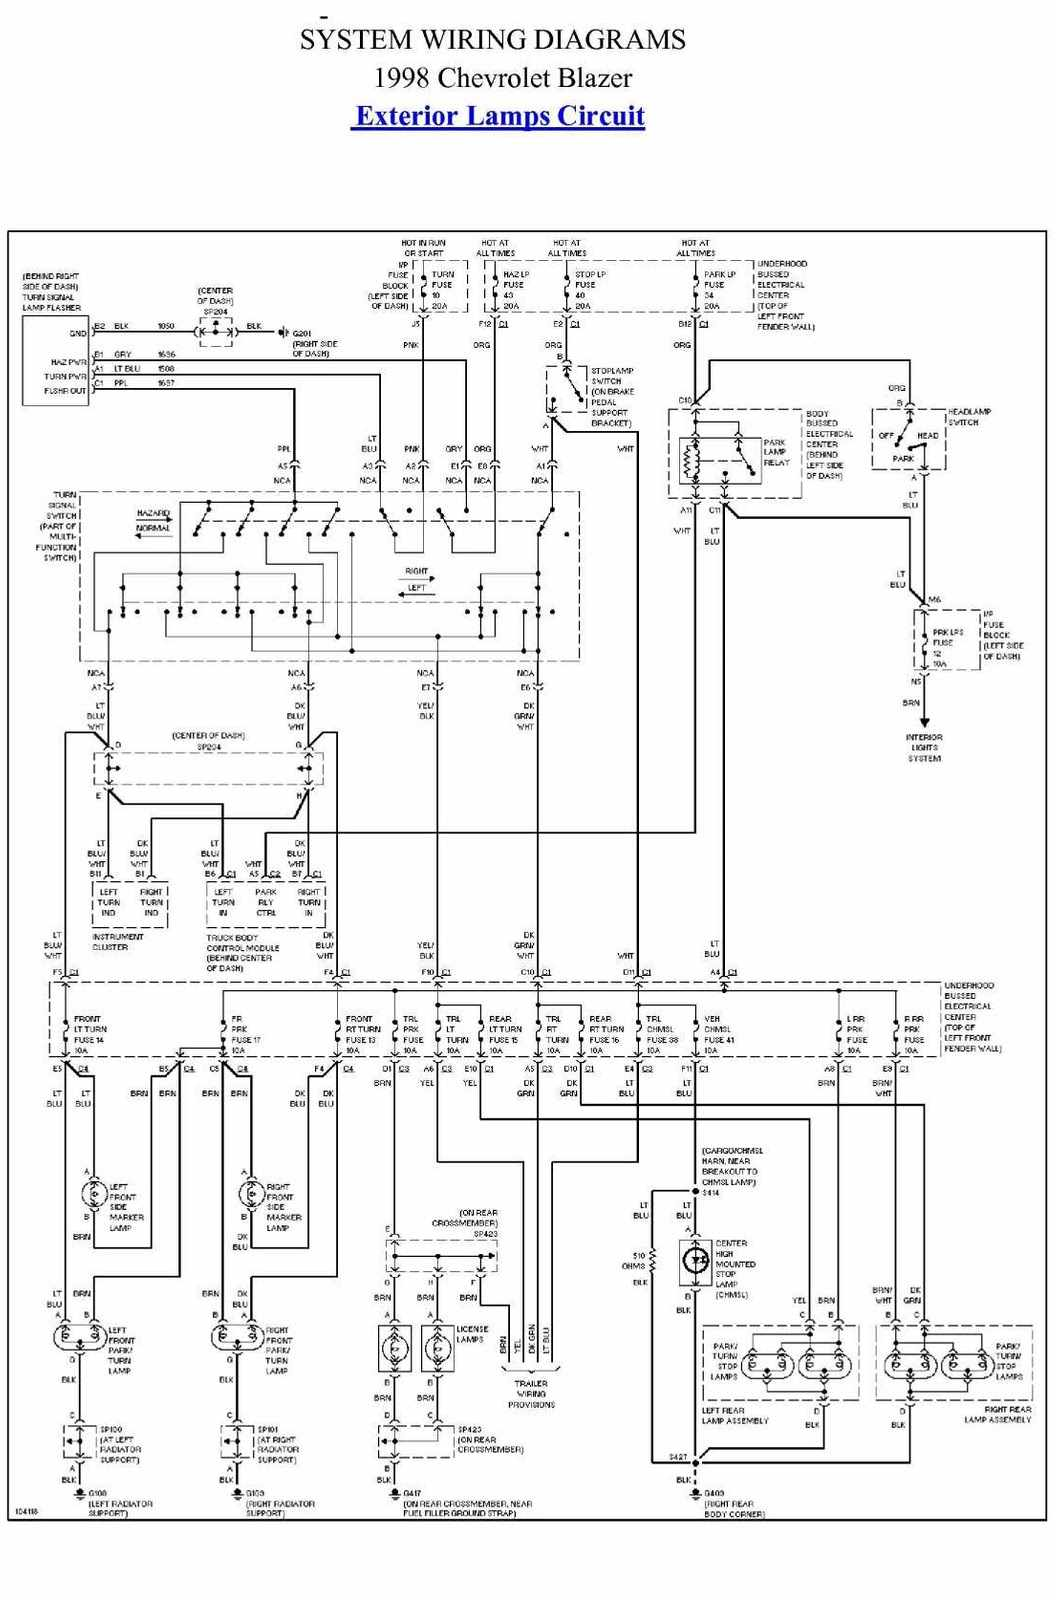 2001 Chevy Blazer Wiring Diagram For Your Needs